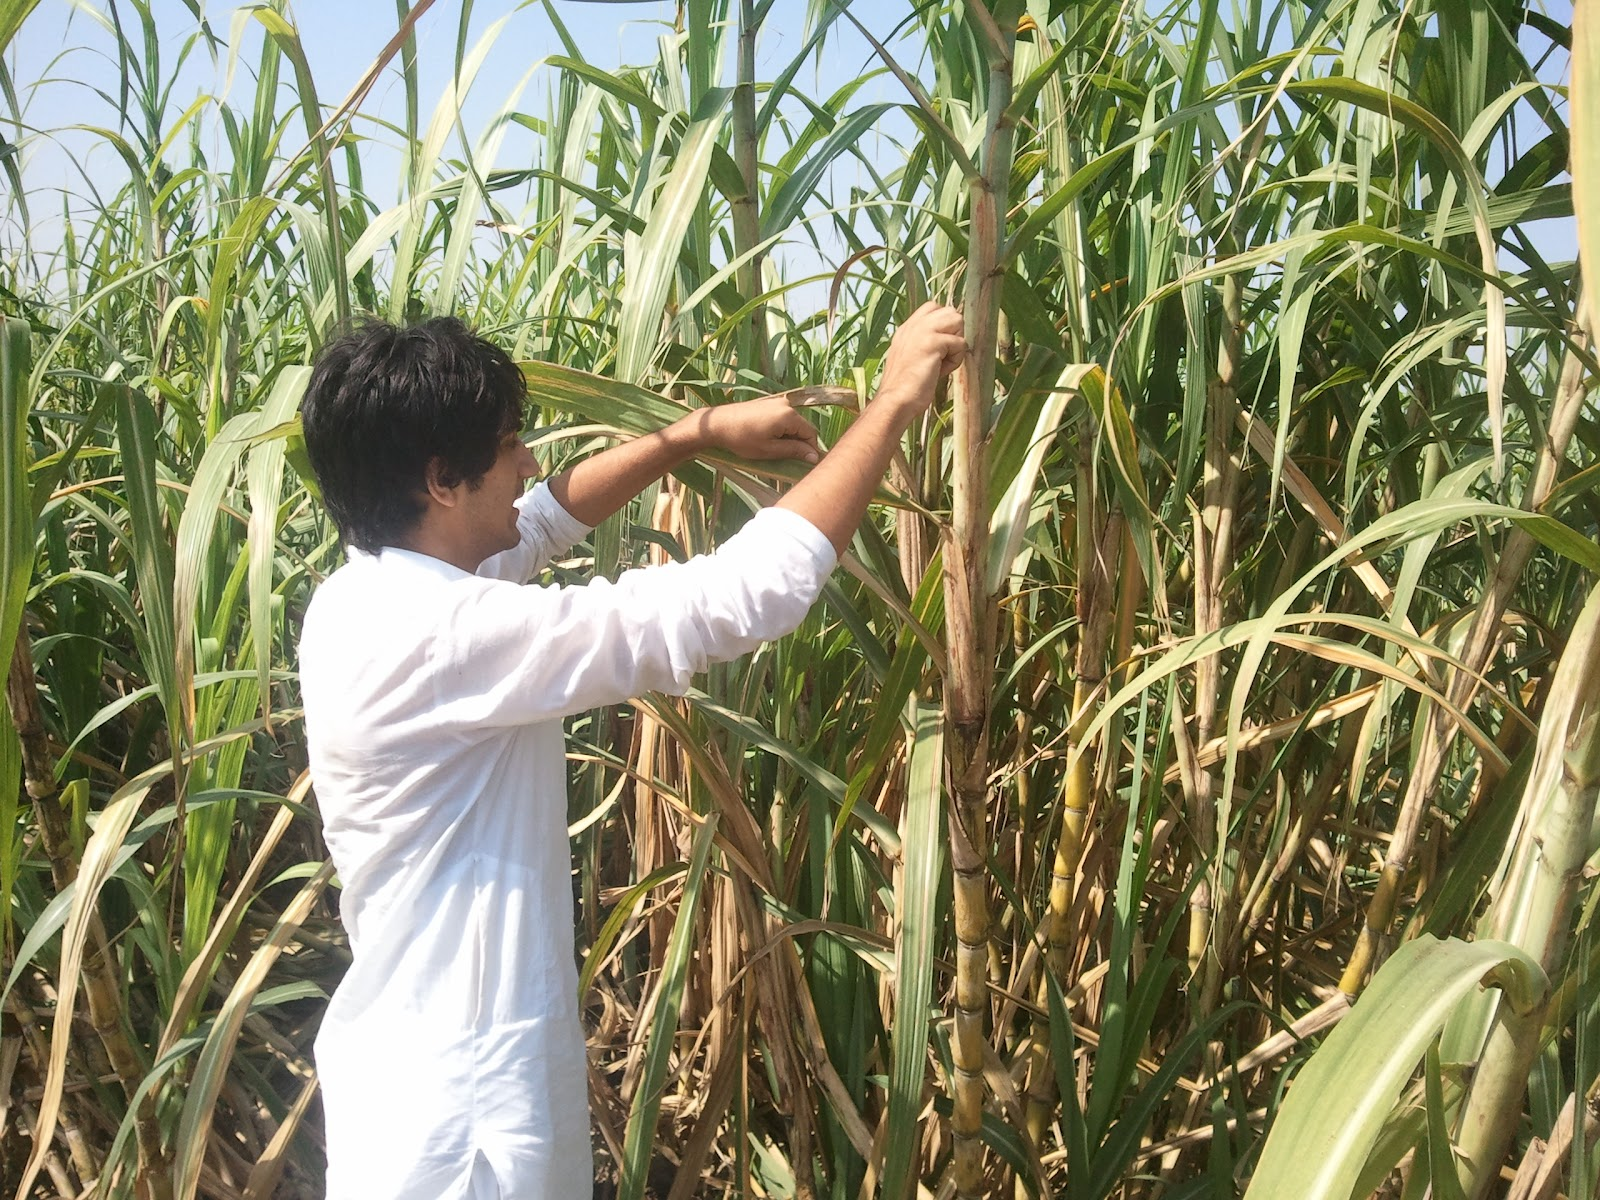 indian sugar industry Sugarcane, or sugar cane, are several species of tall perennial true grasses of the genus saccharum, tribe andropogoneae, native to the warm temperate to tropical regions of south and southeast asia, polynesia and melanesia, and used for sugar production.